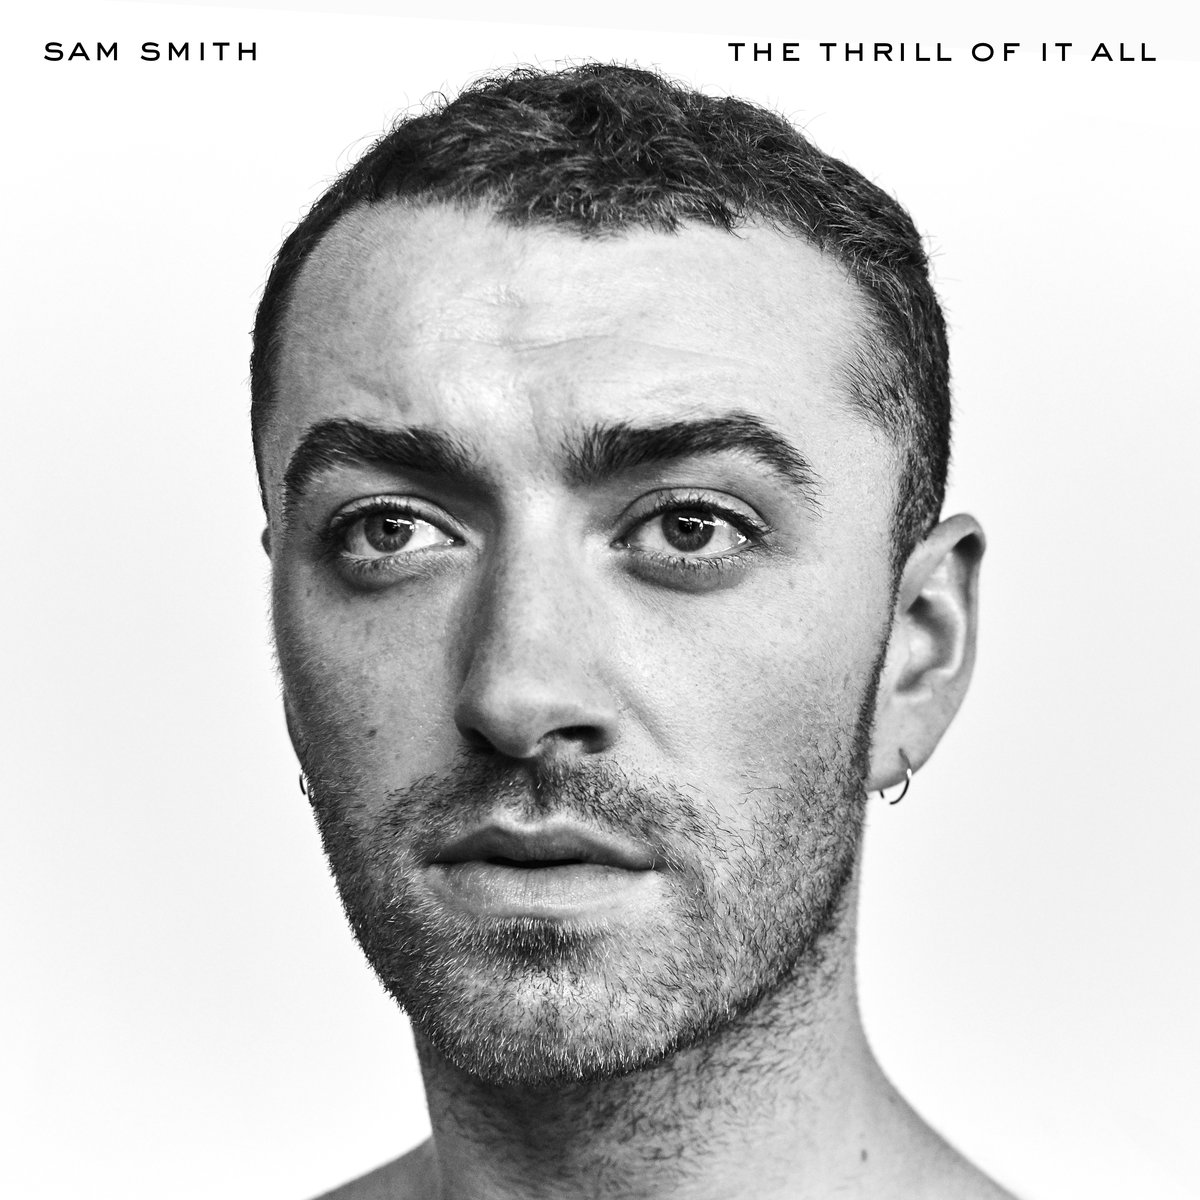 sam-smith-the-thrill-of-it-all-limited-edition-b-iext51444036.jpg